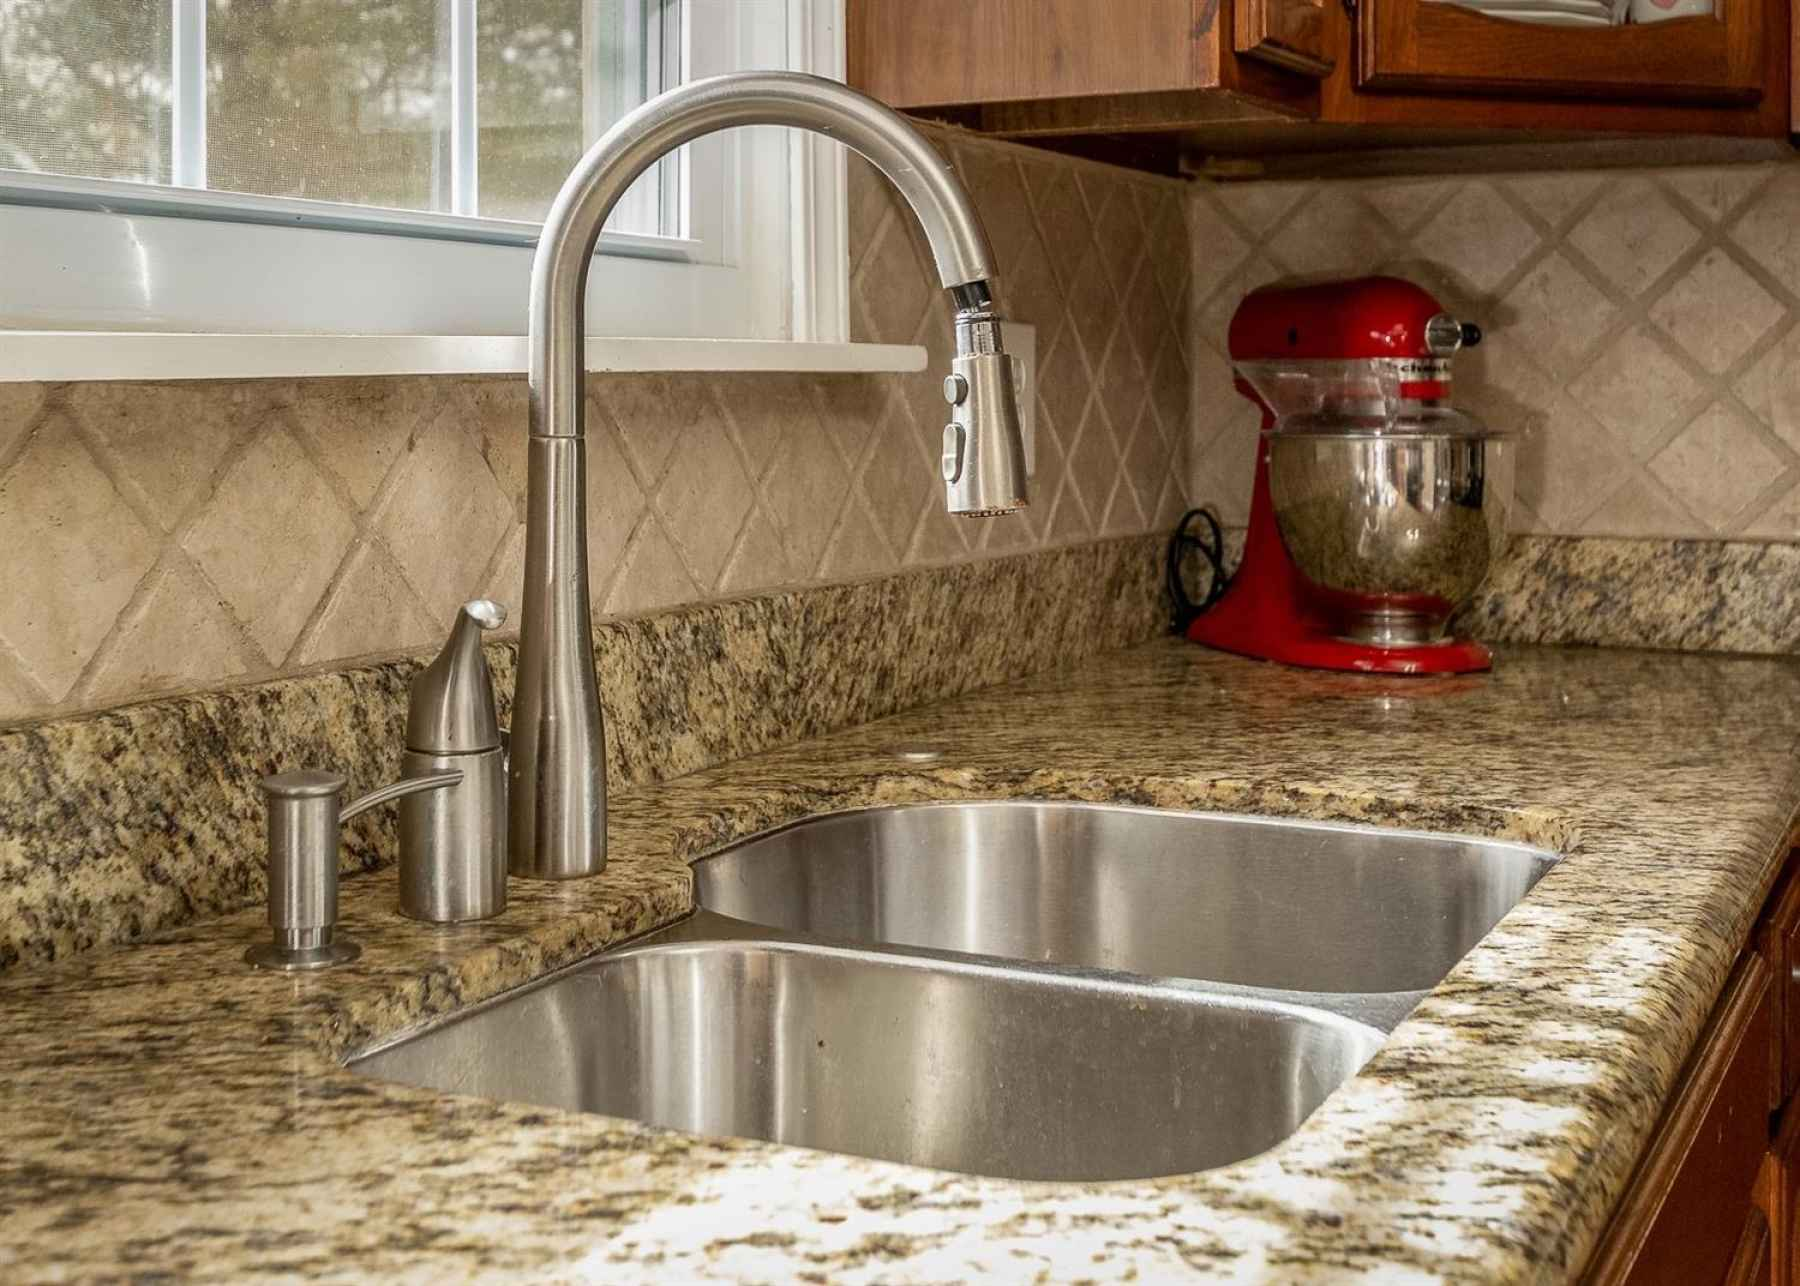 The backsplash just adds that special touch to this already gorgeous kitchen